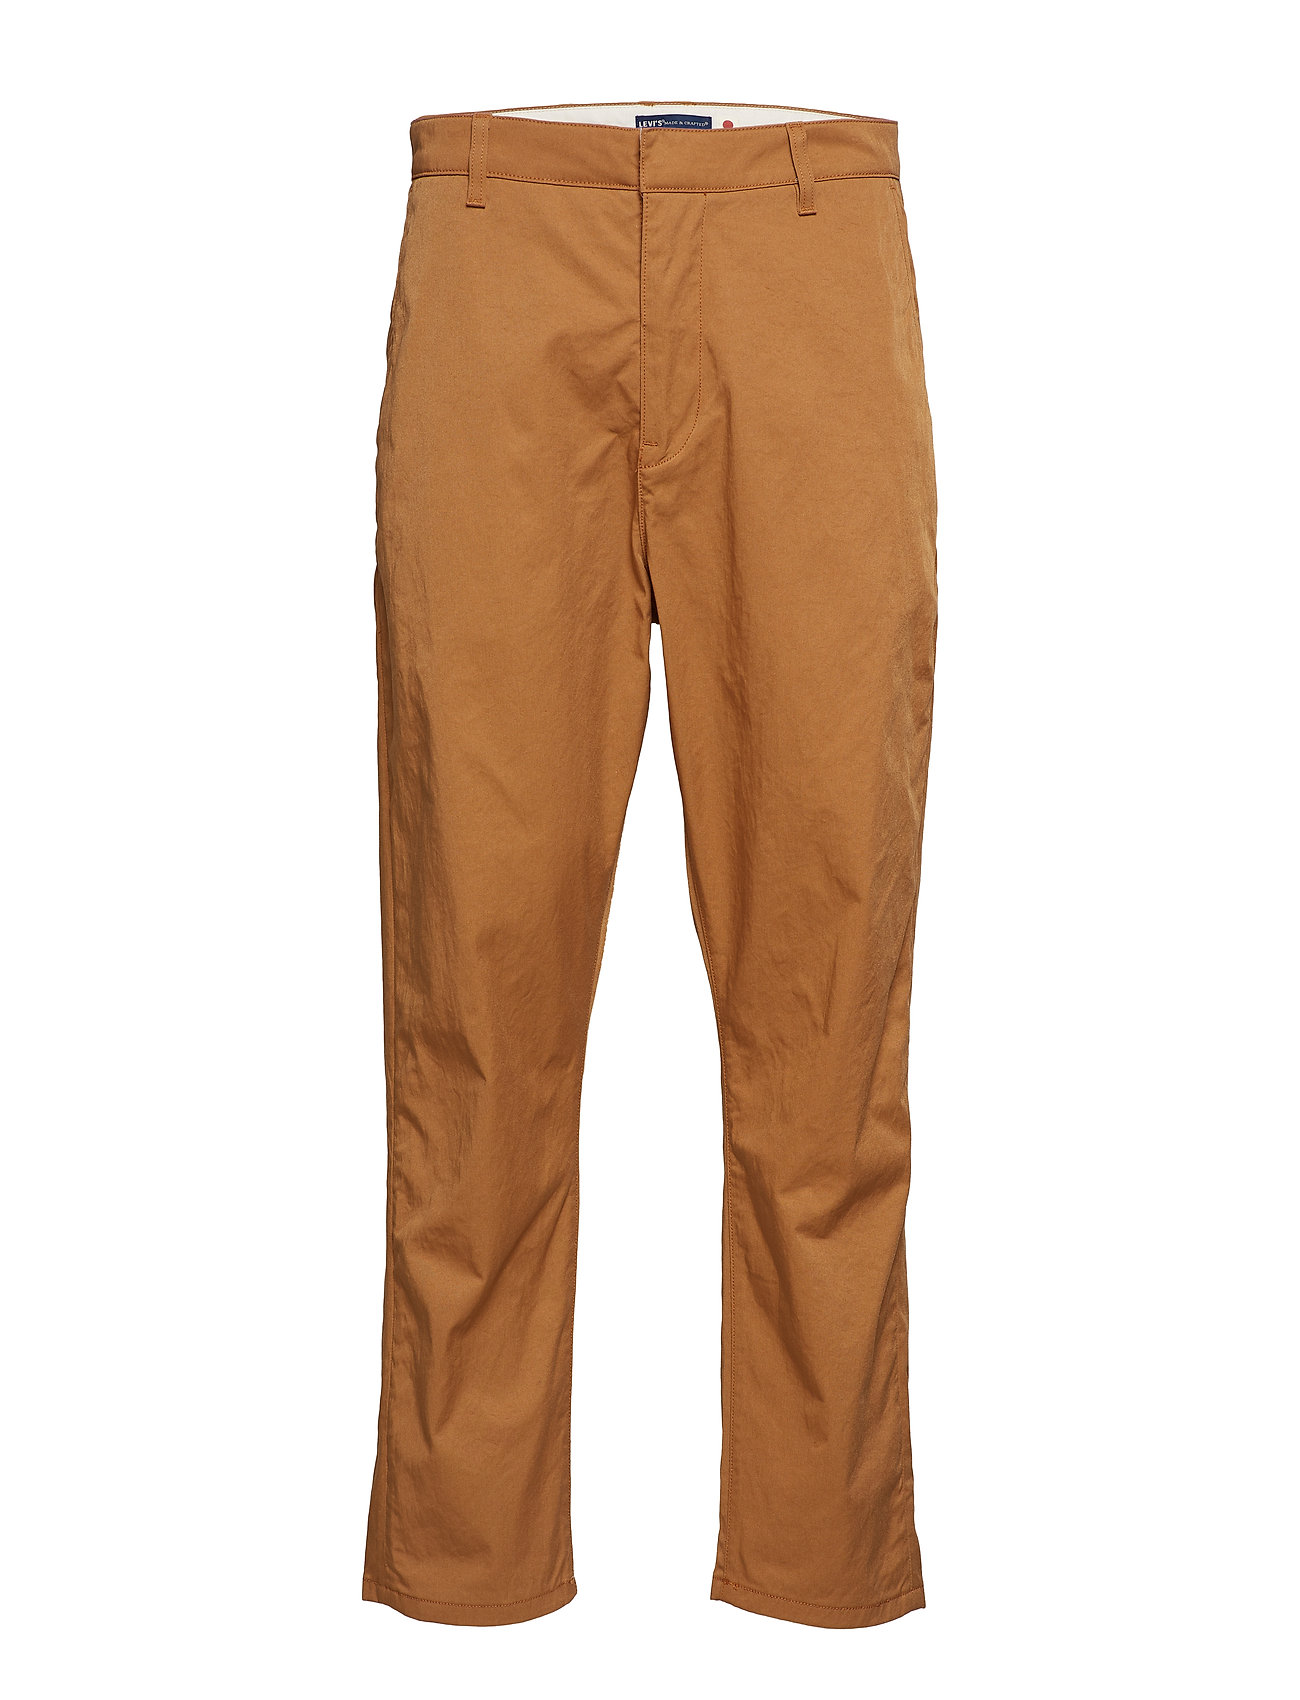 Levi's Made & Crafted LMC TAPER TROUSER LMC TOBACCO - YELLOWS/ORANGES